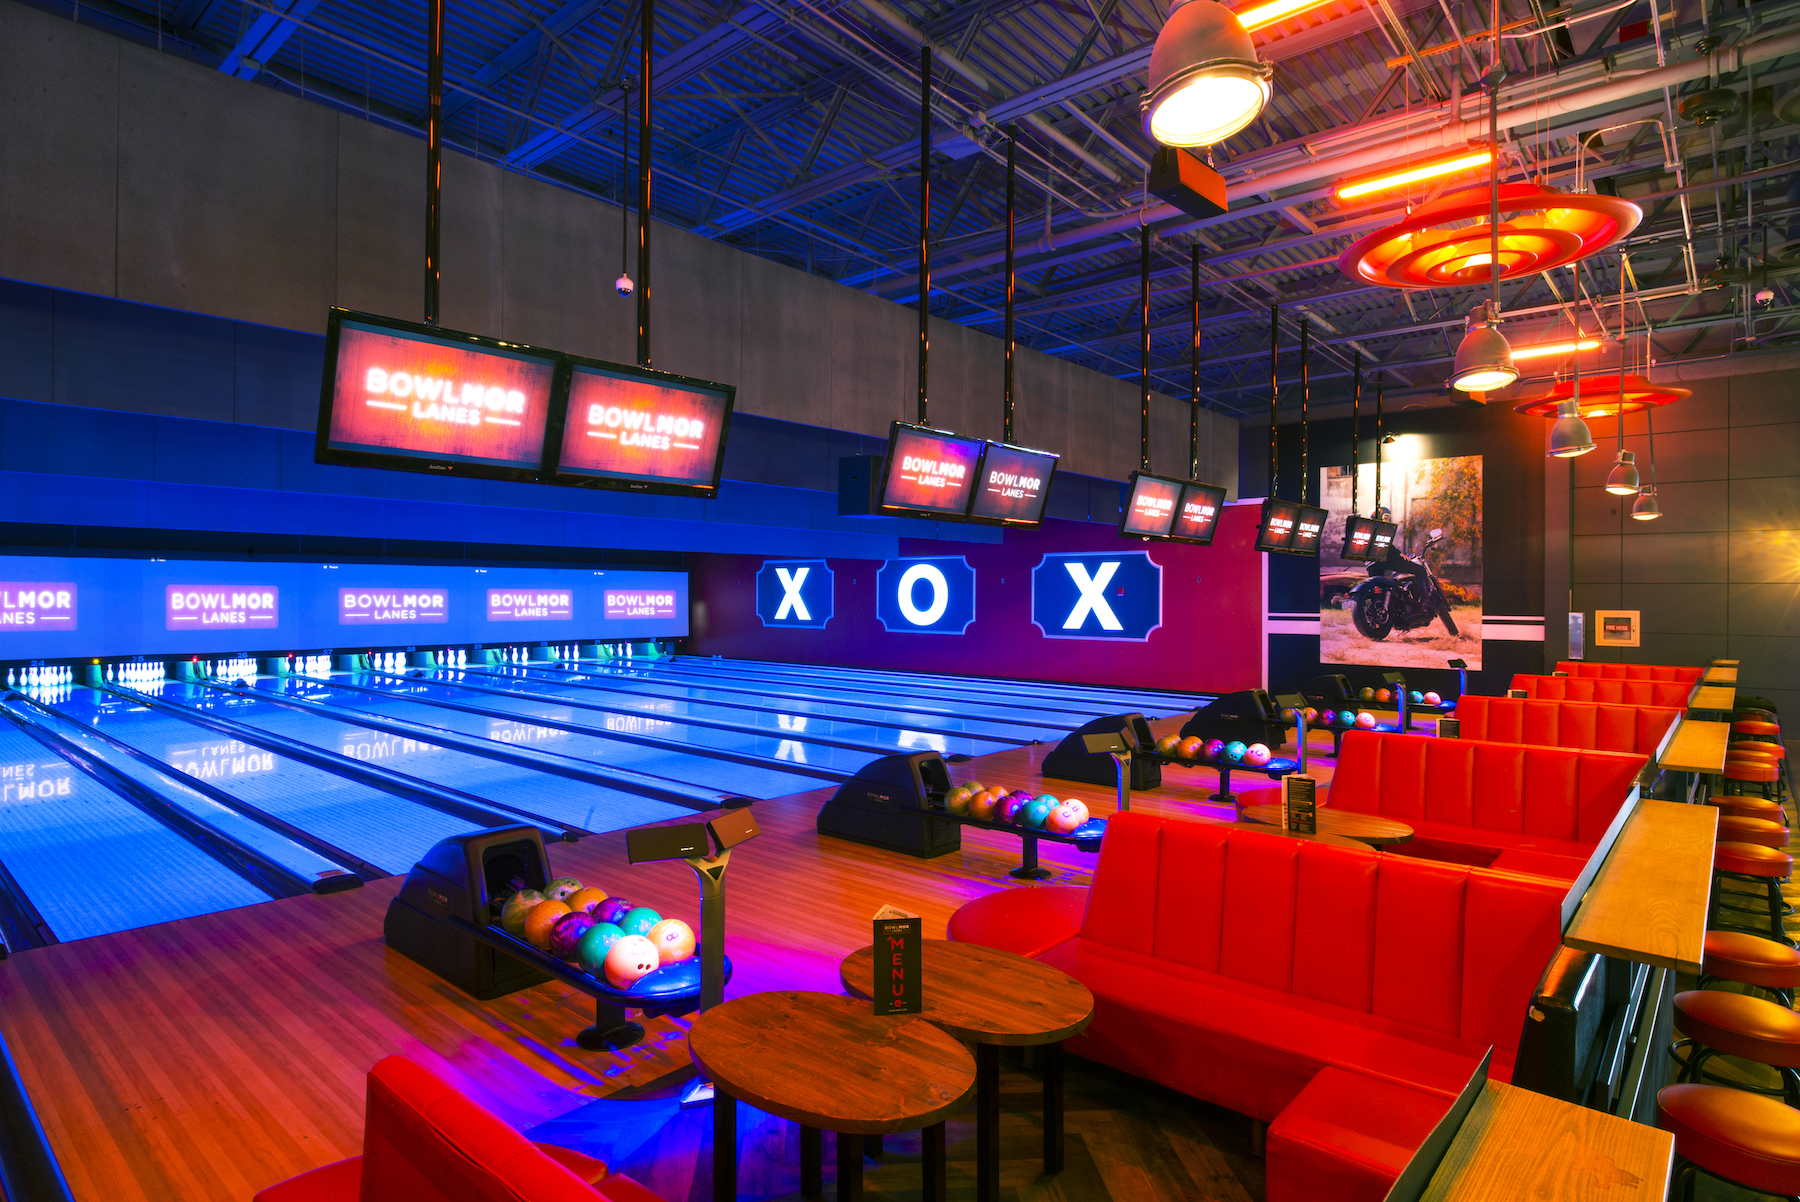 The Kingpin  event space at Bowlmor Chelsea Piers in New York City, NYC, NY/NJ Area